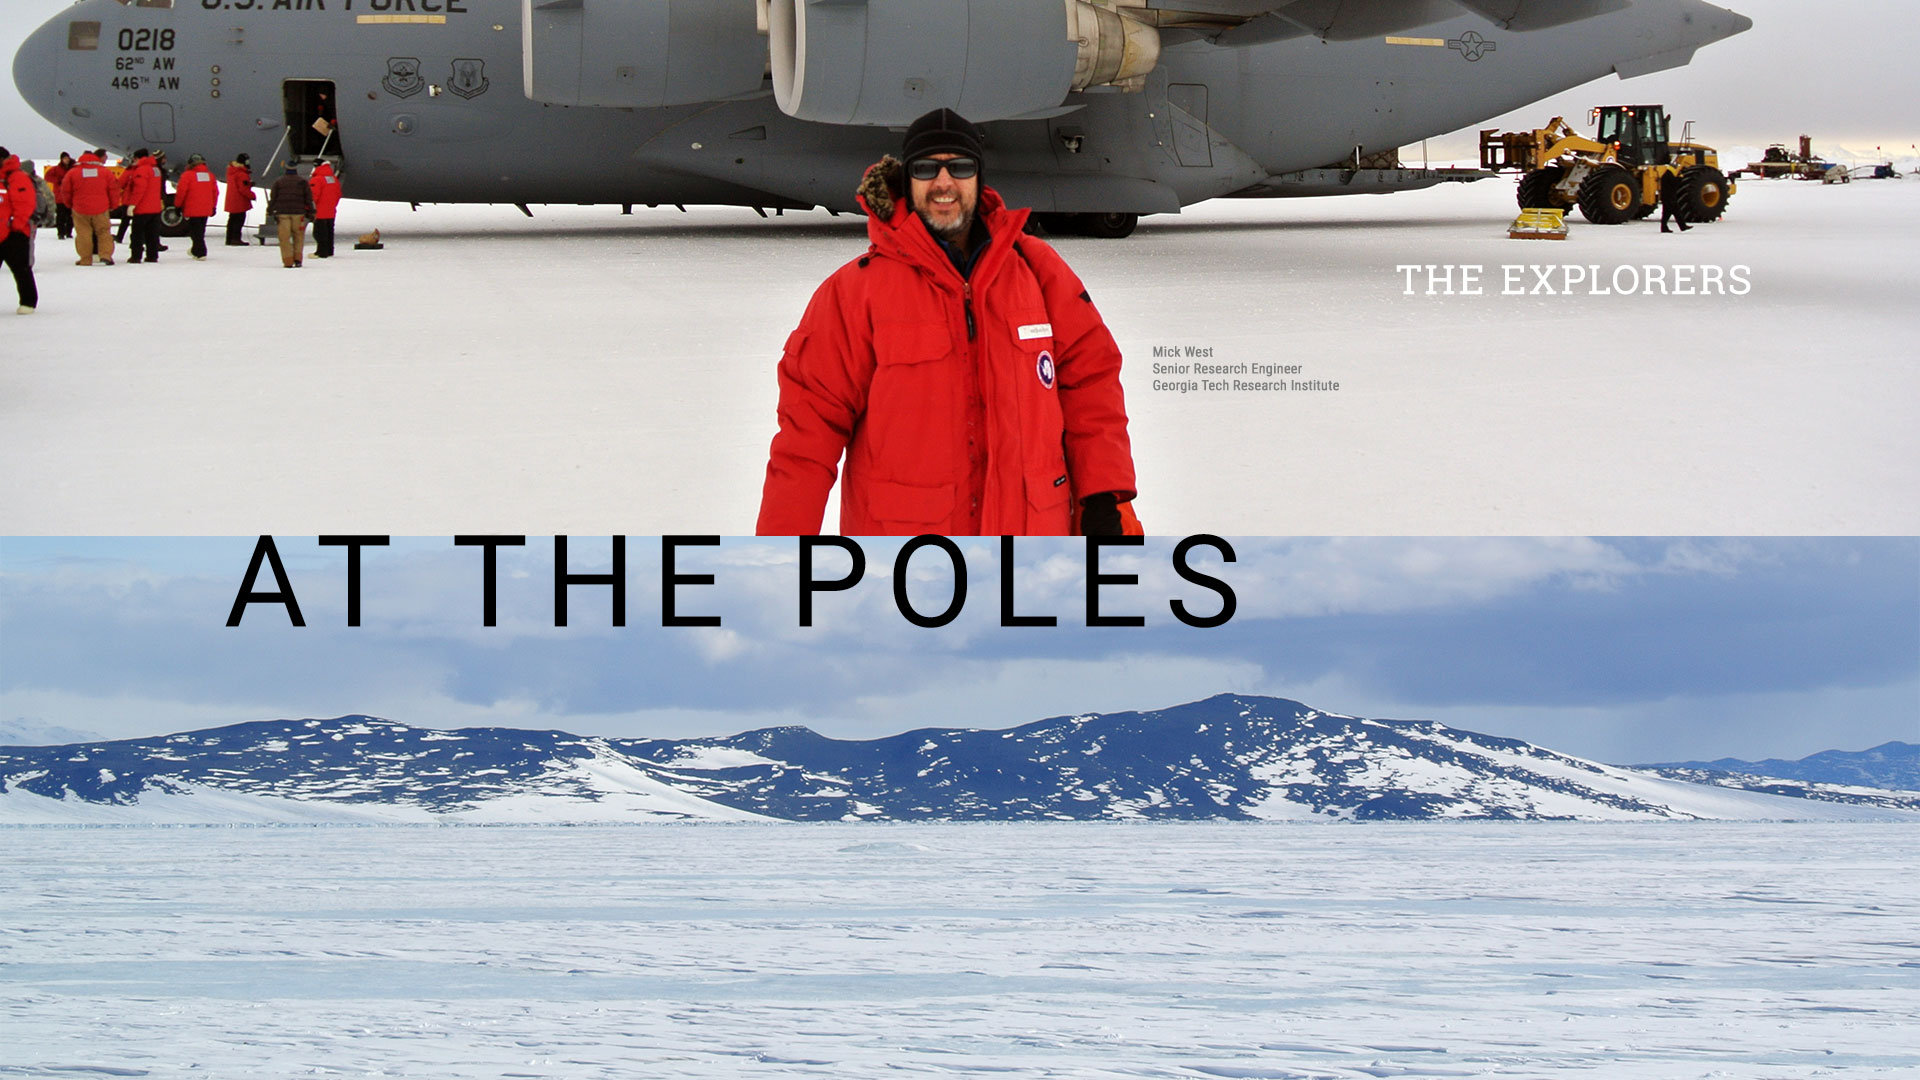 The Explorers - At the poles